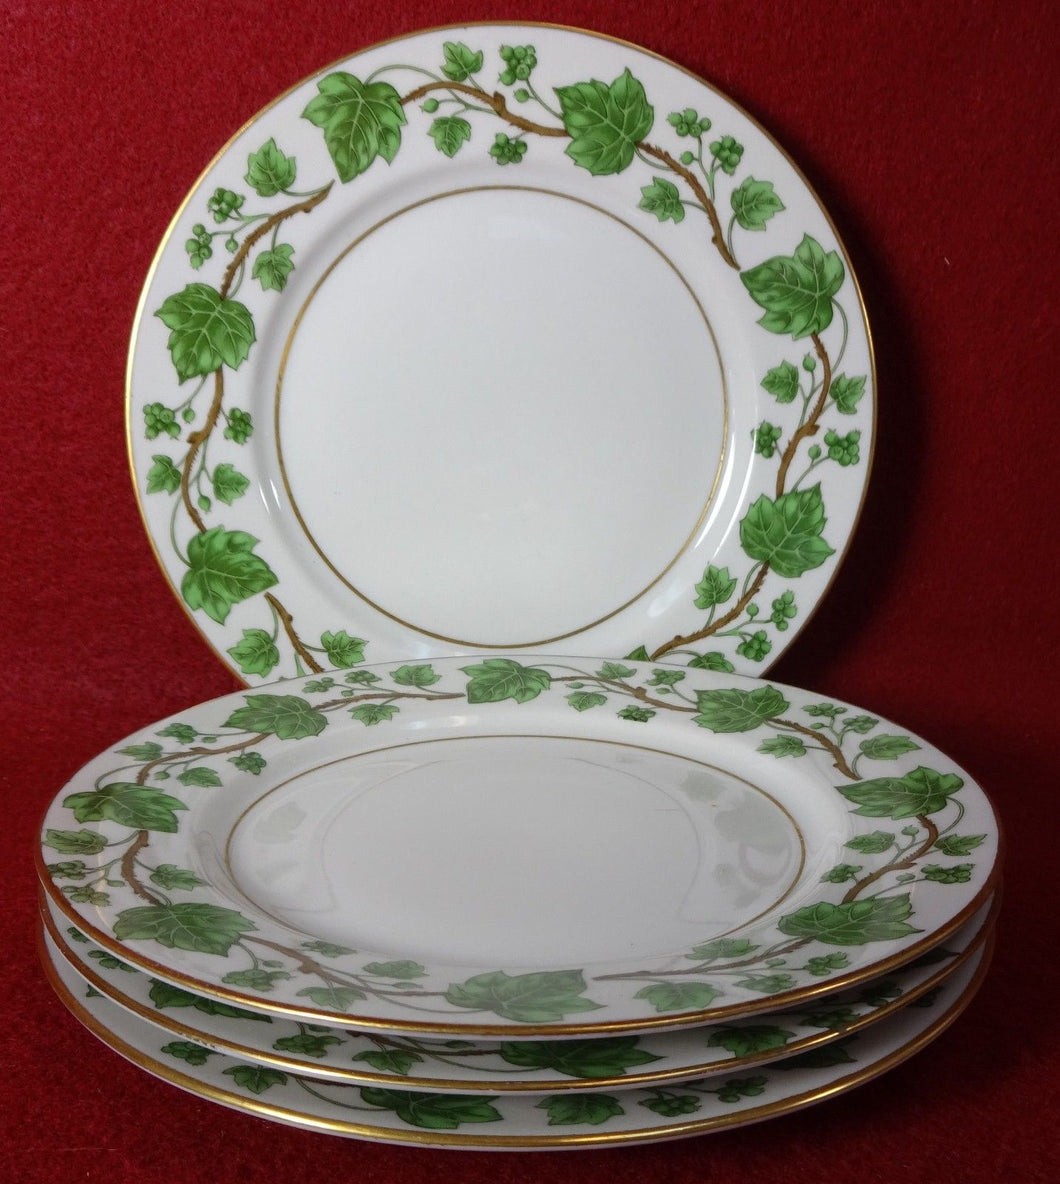 ROYAL JACKSON china EMERALD IVY pattern Bread Plate - Set of Four (4) - 6-1/4